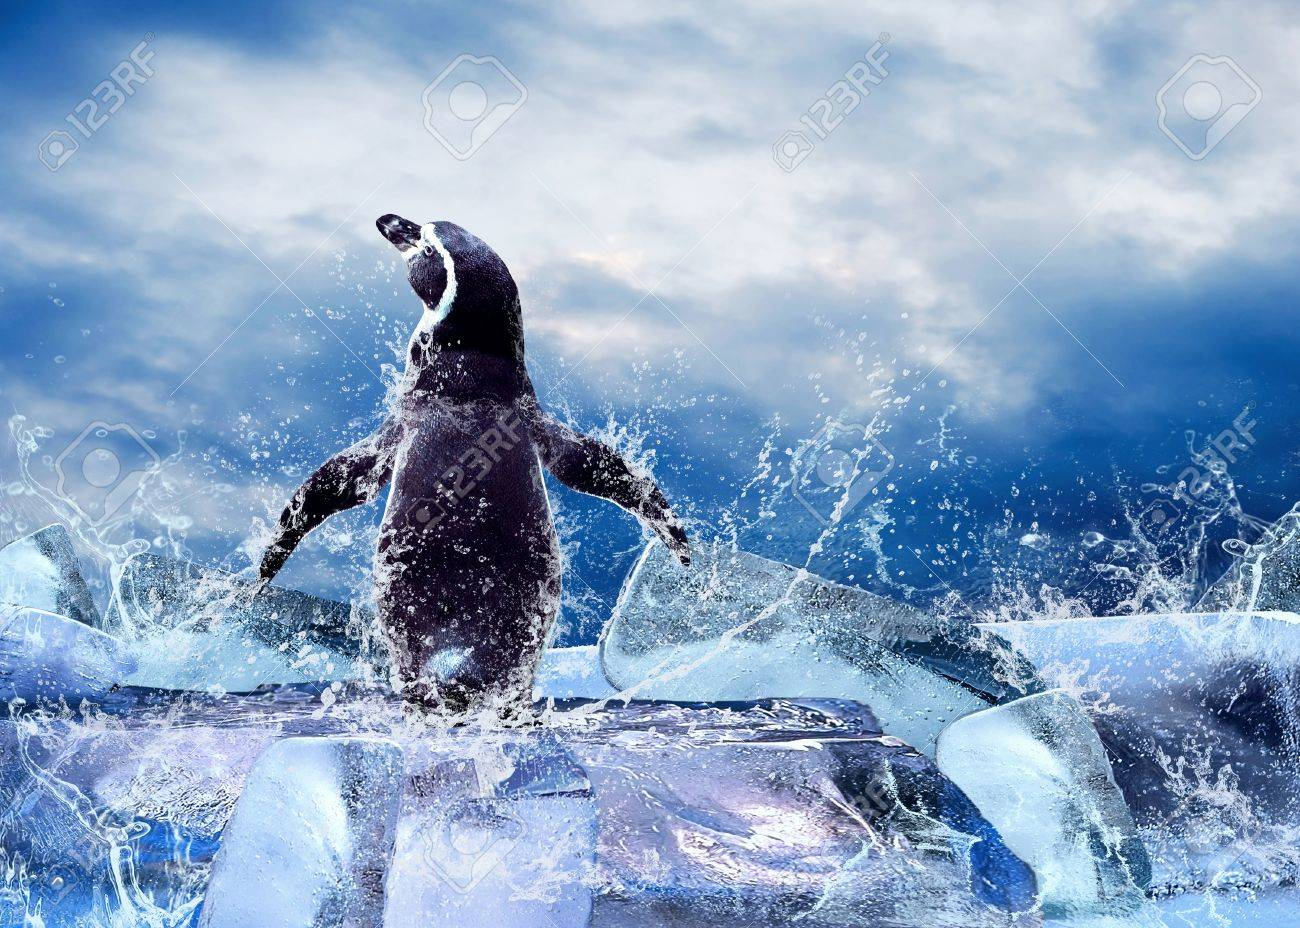 Penguin on the Ice in water drops. - 9850948